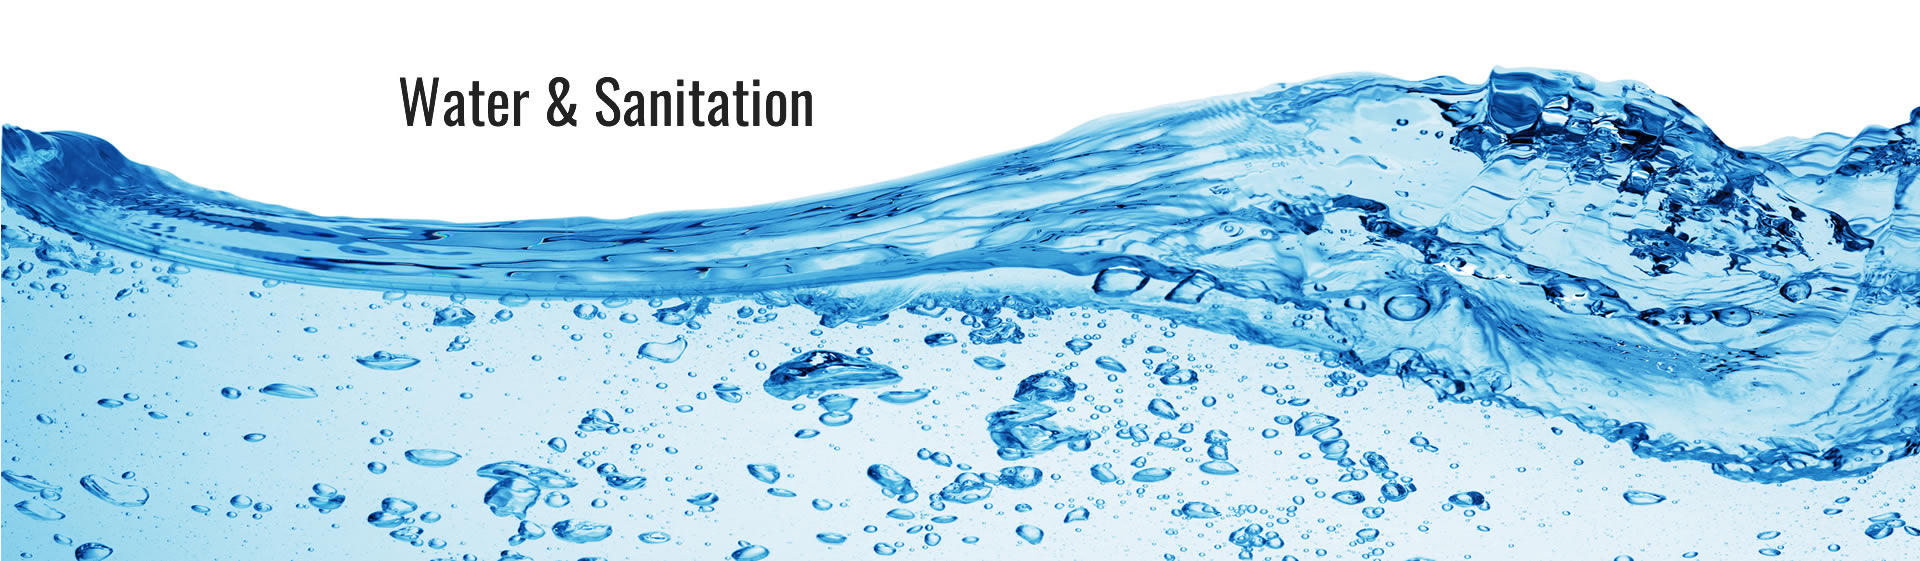 water & sanitation consulting